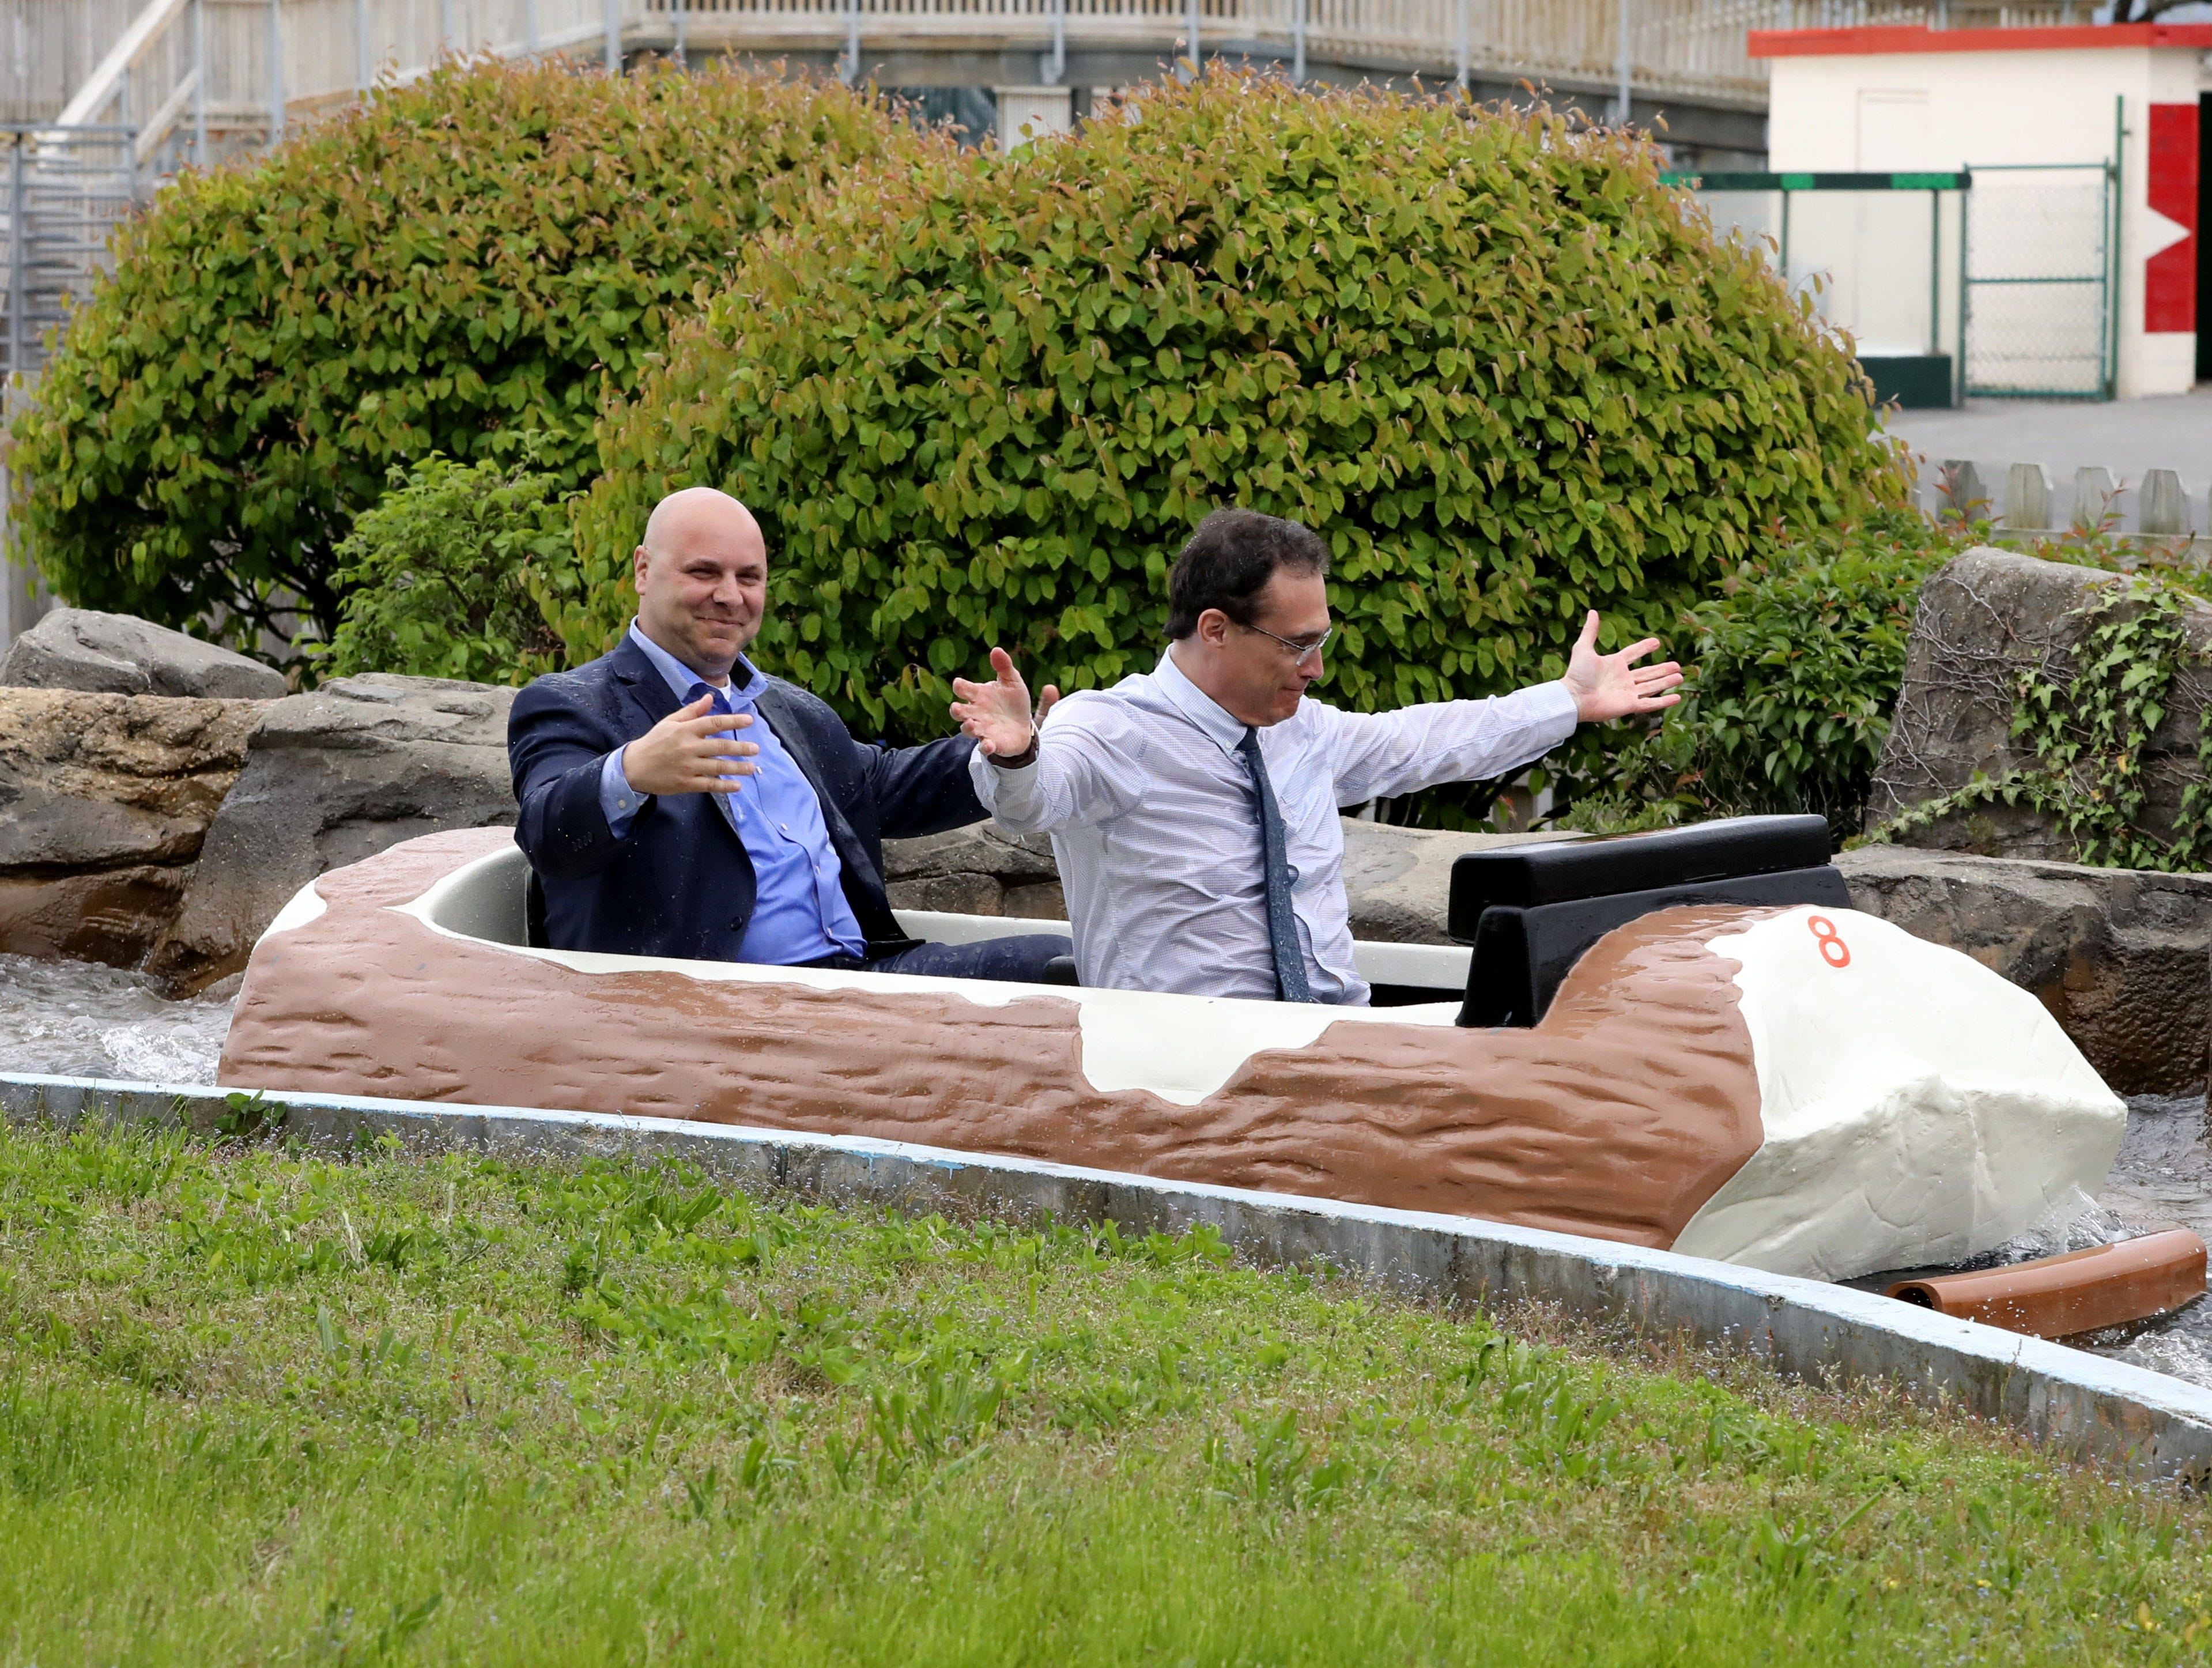 """Peter Tartaglia, front, the deputy commissioner of Westchester County Parks and Frank Carrieri, the general manager at Playland, are soaked after riding the Log Flume during a """"ride and food safety tour"""" for the media, at Playland in Rye, May 9, 2019."""